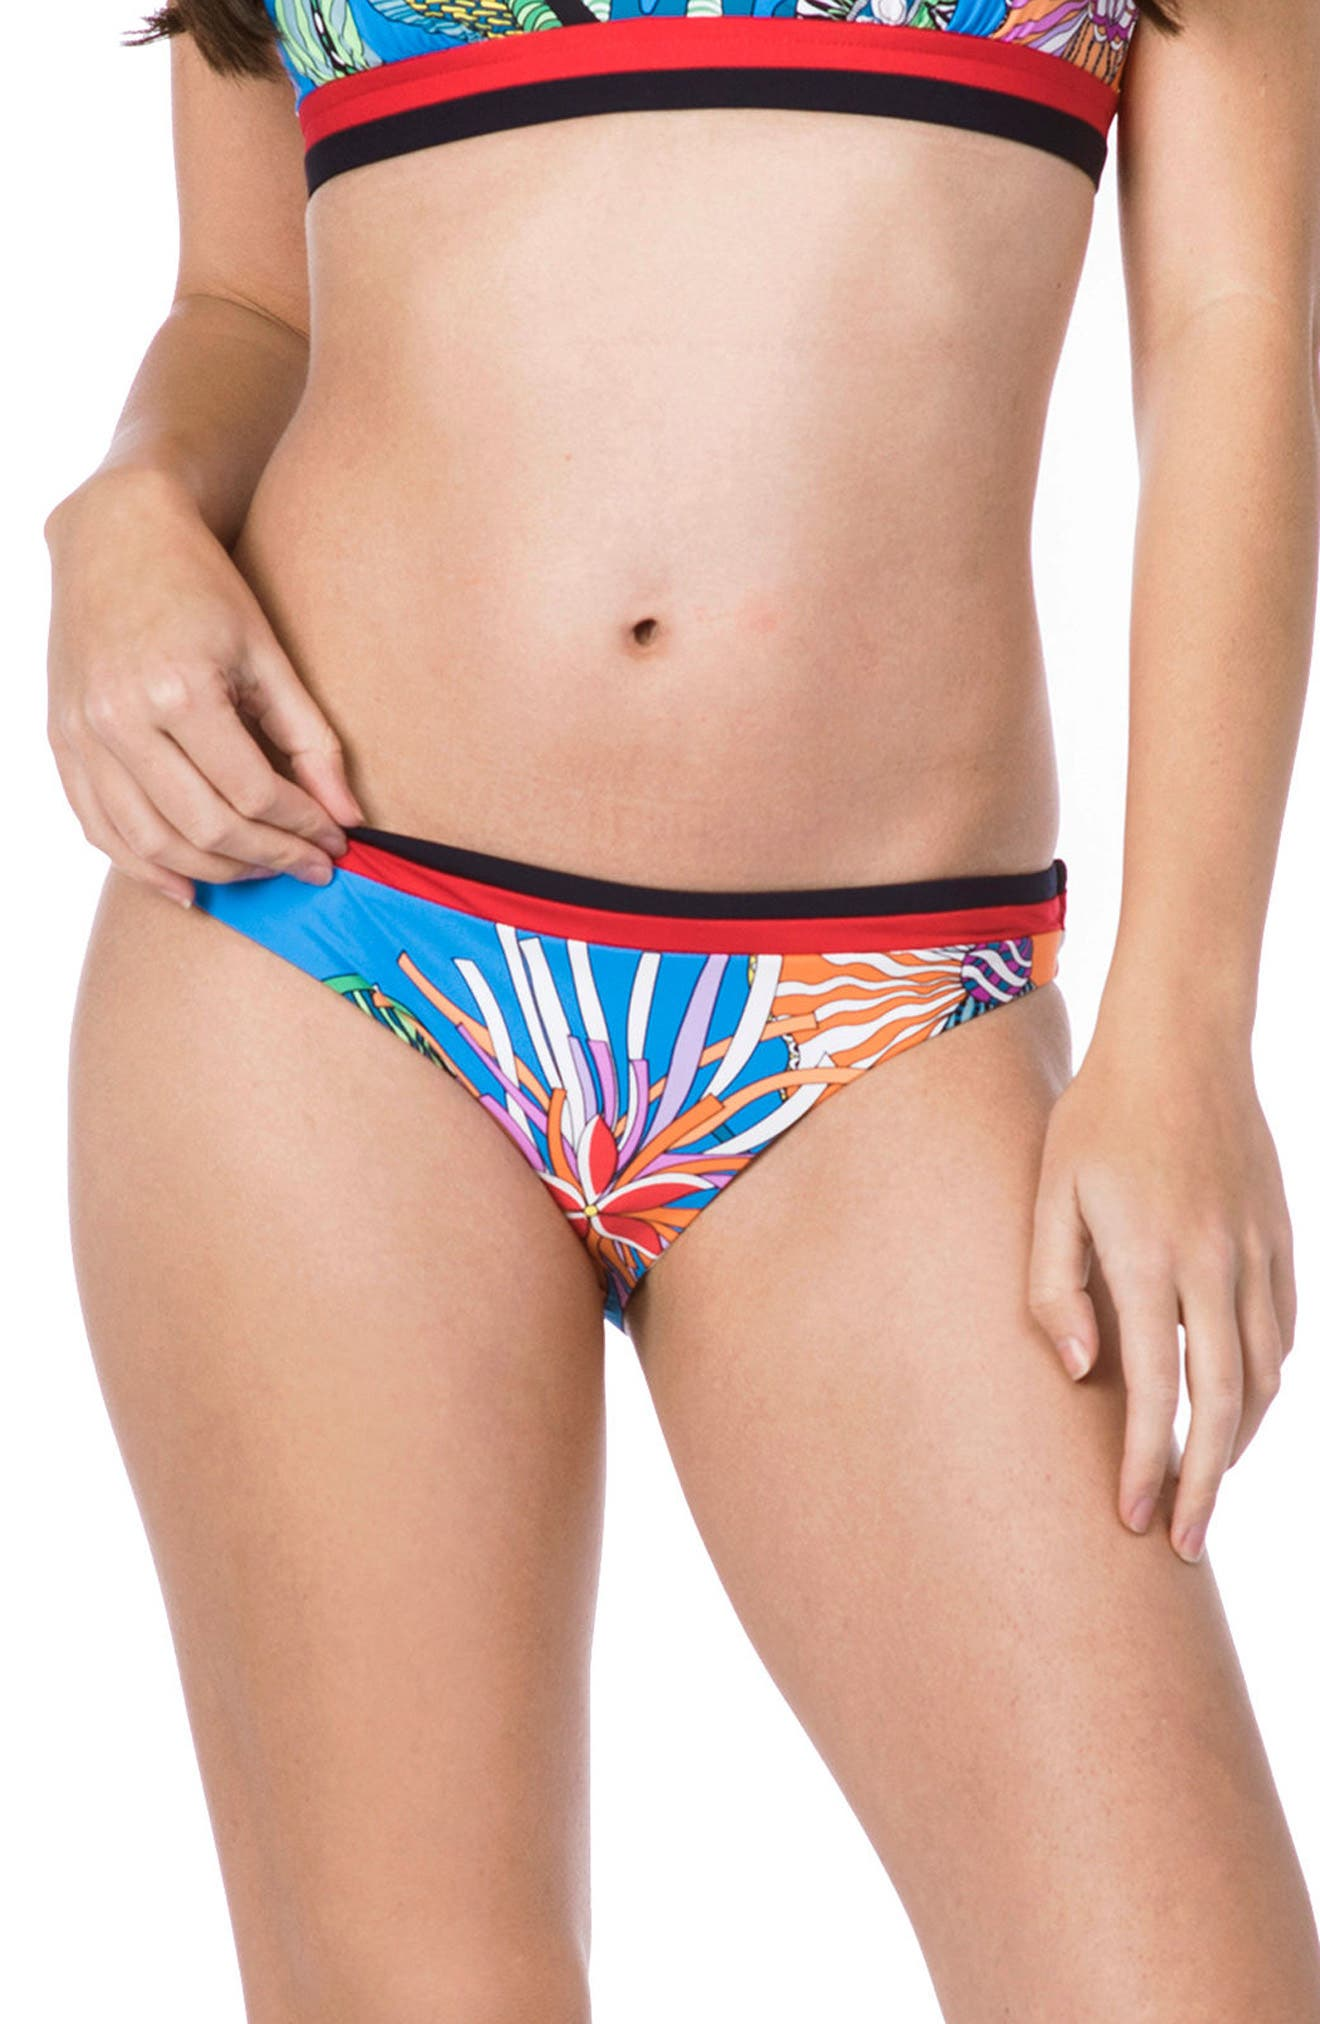 Tahiti Tropical Hipster Bikini Bottoms,                         Main,                         color, BLUE MULTI